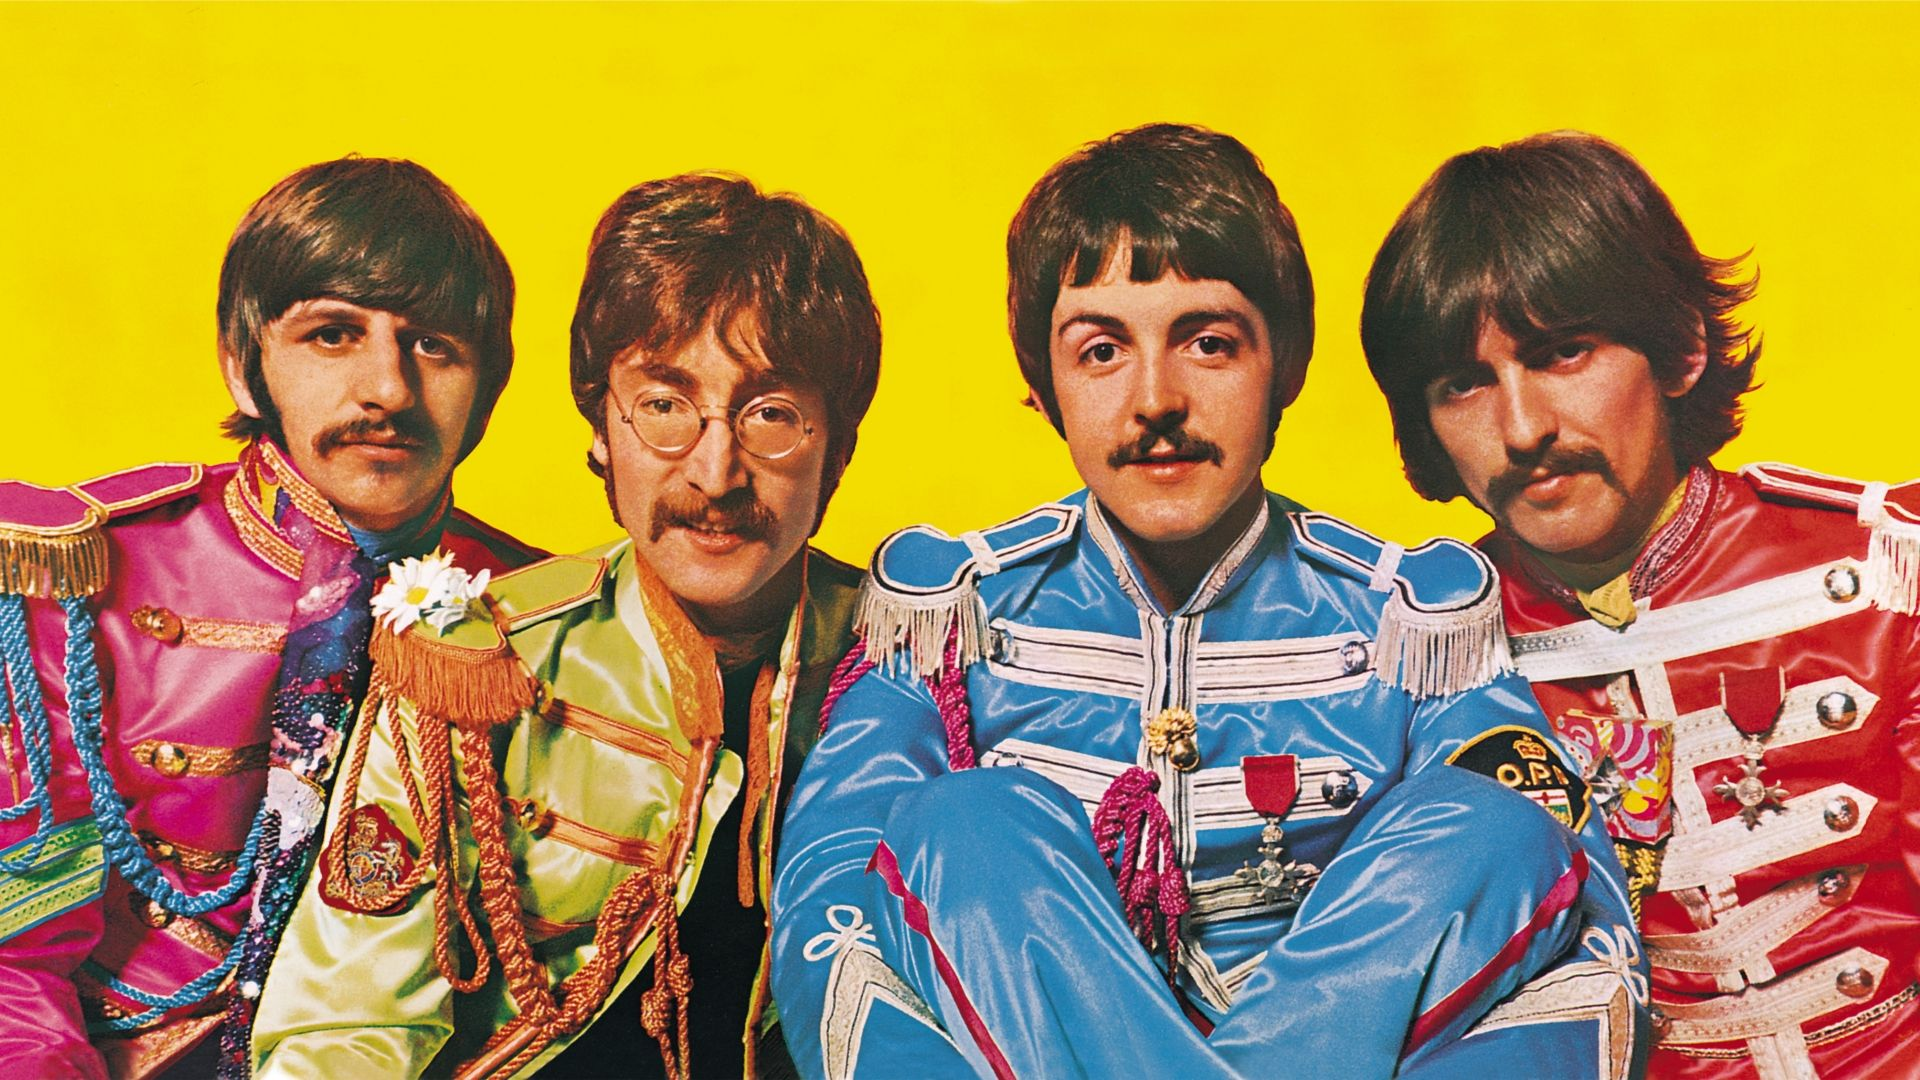 The beatles wallpaper google search the beatles pinterest the beatles wallpaper google search voltagebd Choice Image